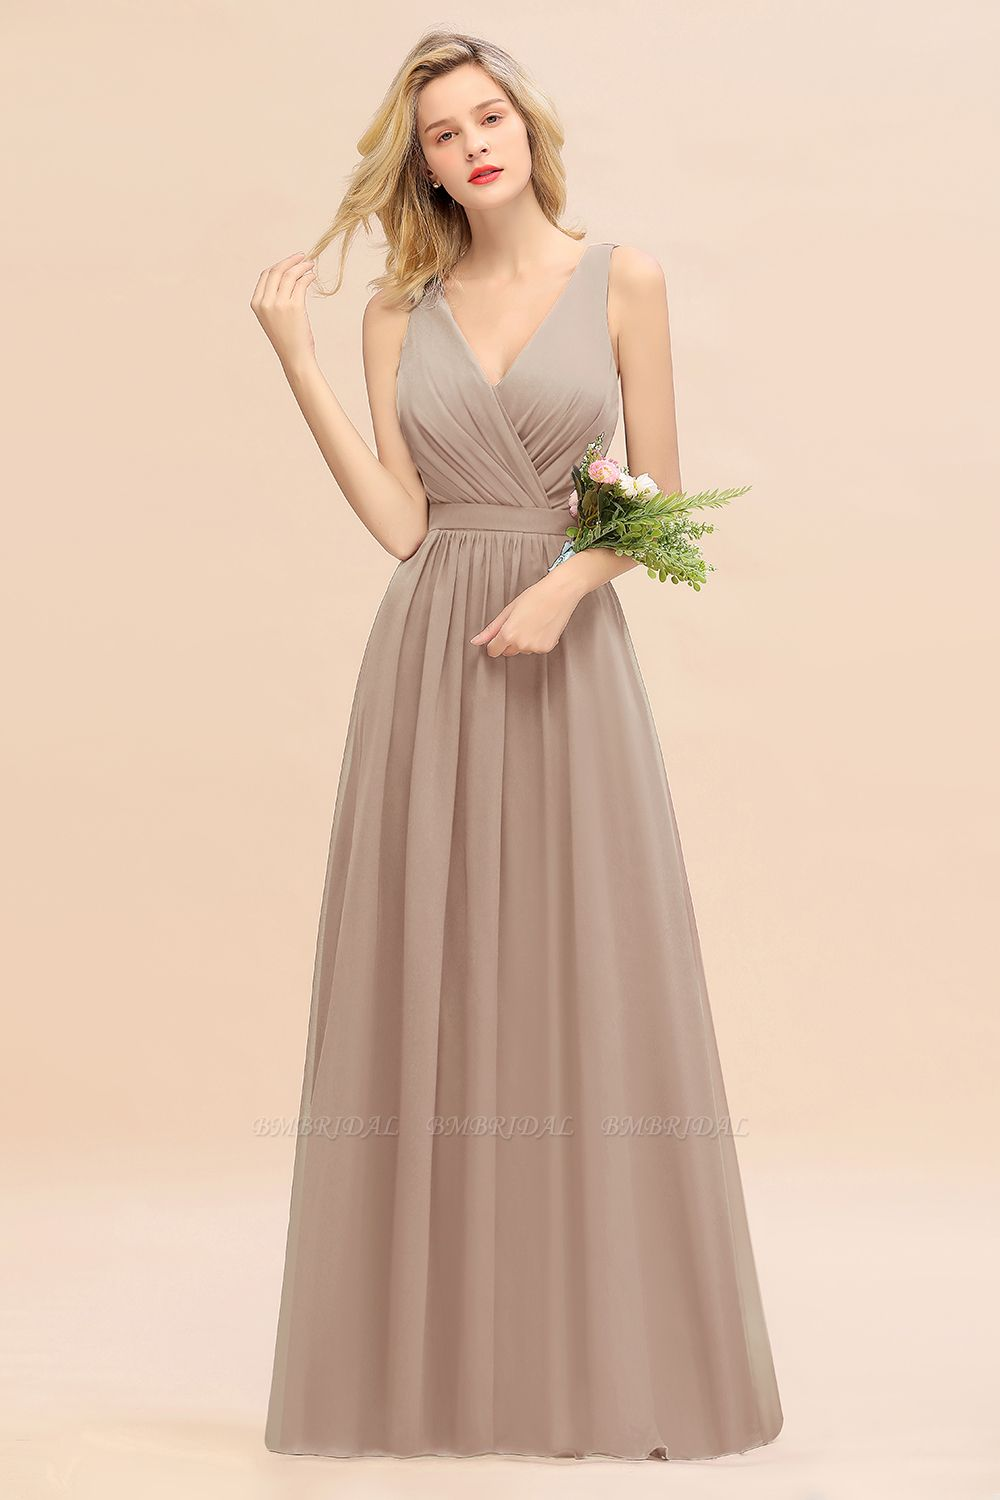 BMbridal Affordable V-Neck Ruffle Long Grape Chiffon Bridesmaid Dress with Bow